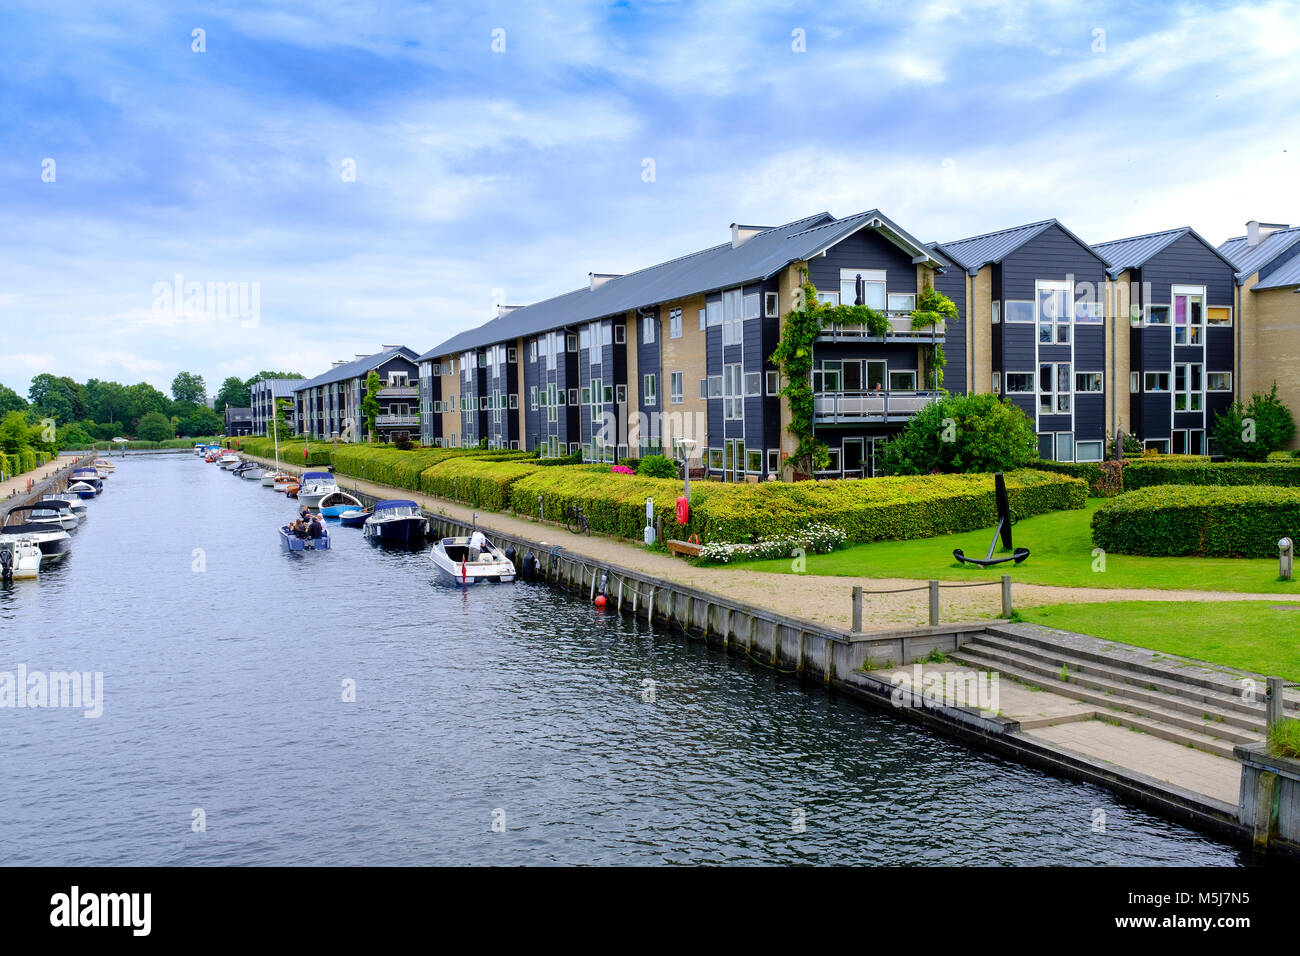 Copenhagen, Zealand region / Denmark - 2017/07/26: panoramic view of the contemporary architecture and water canals of the Christianshavn district Stock Photo